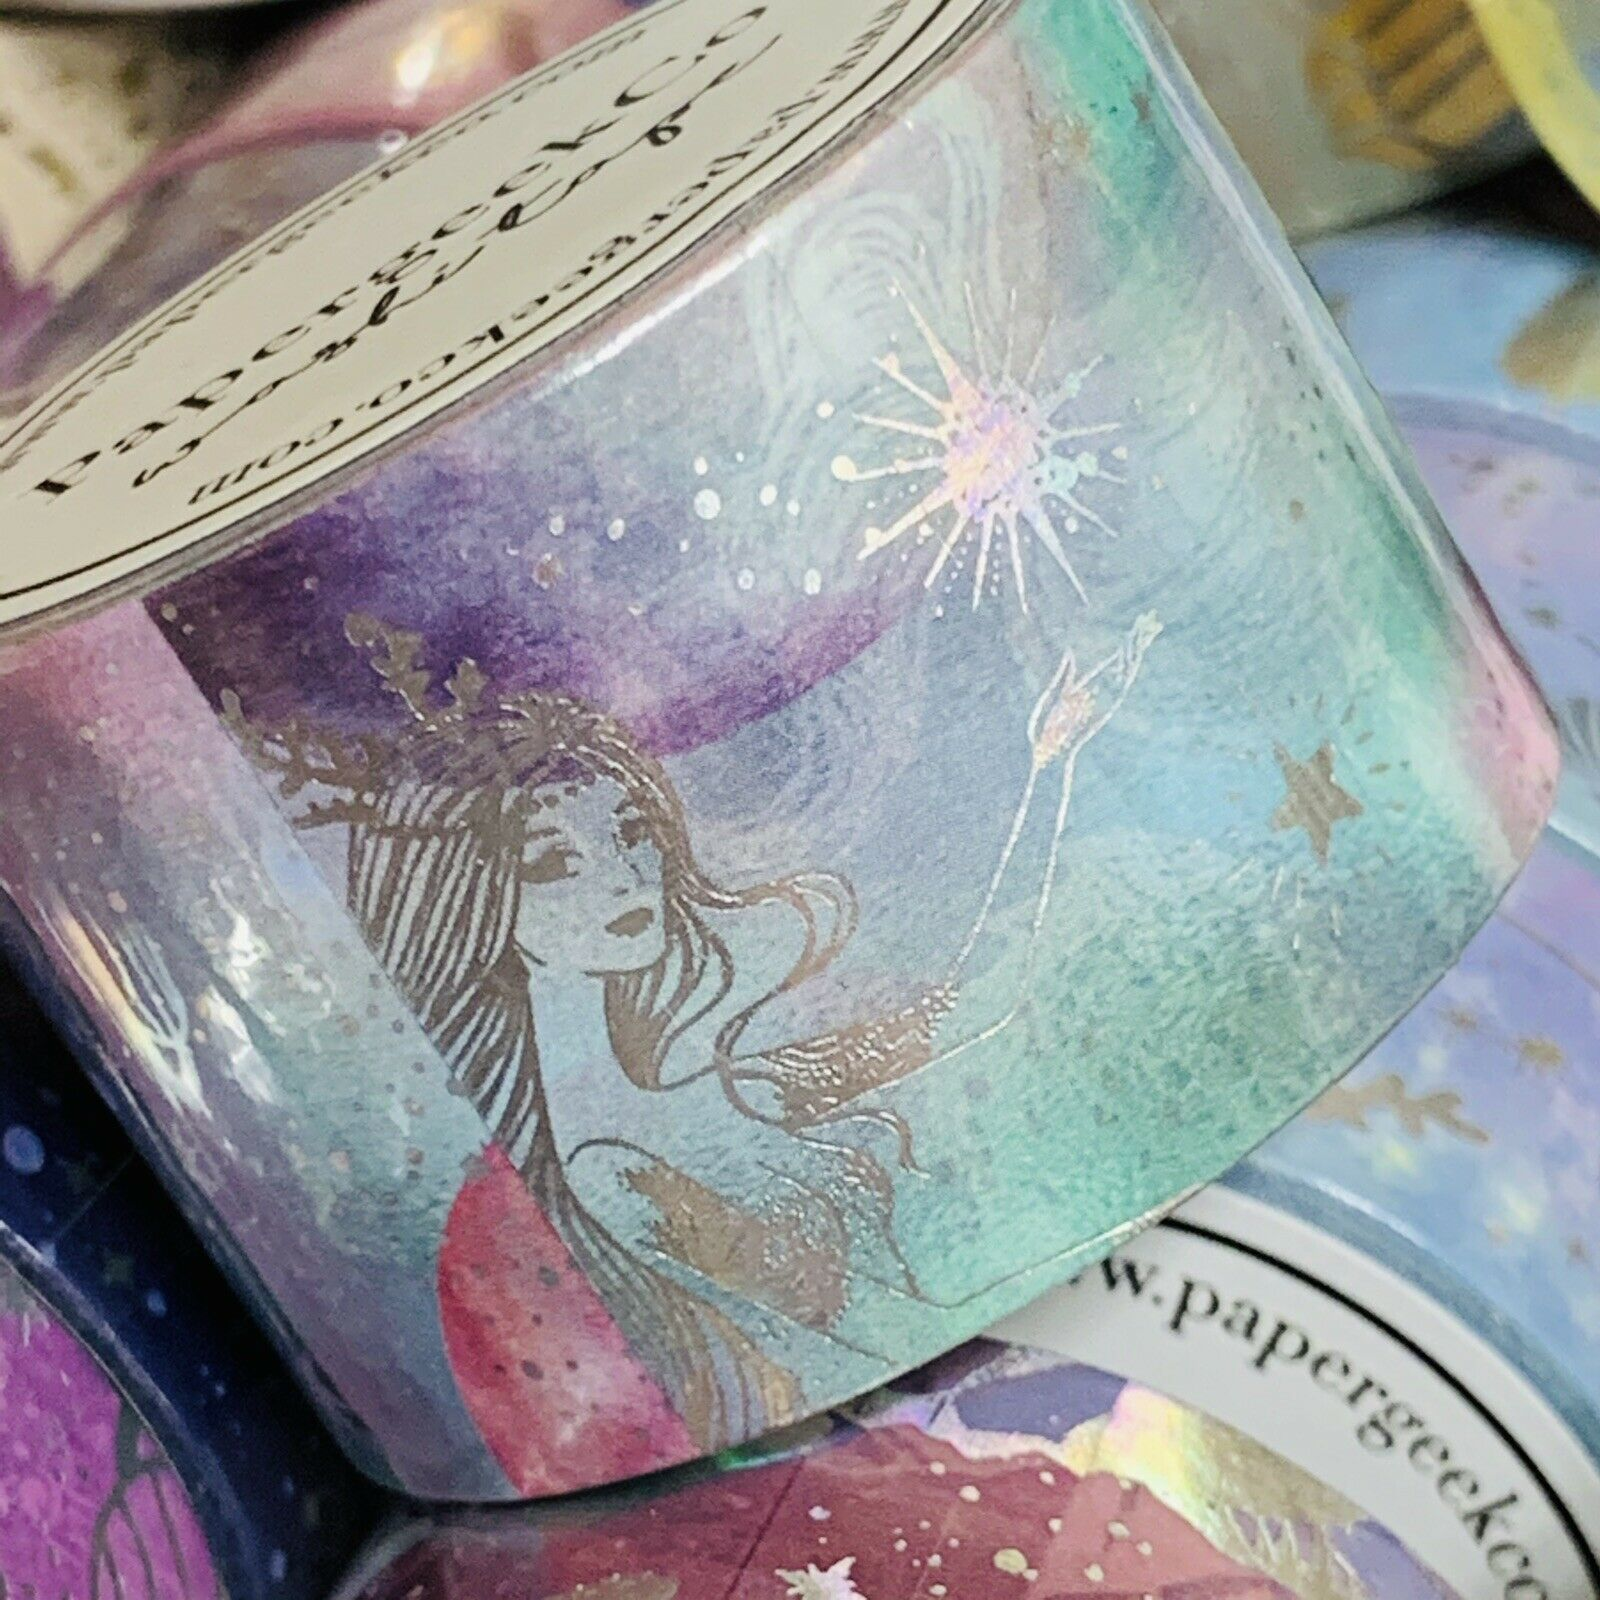 SEALED PAPERGEEK MERMAID Sold Out Silver FOIL WASHI SET 33 Feet Rolls 2 ROLL SET